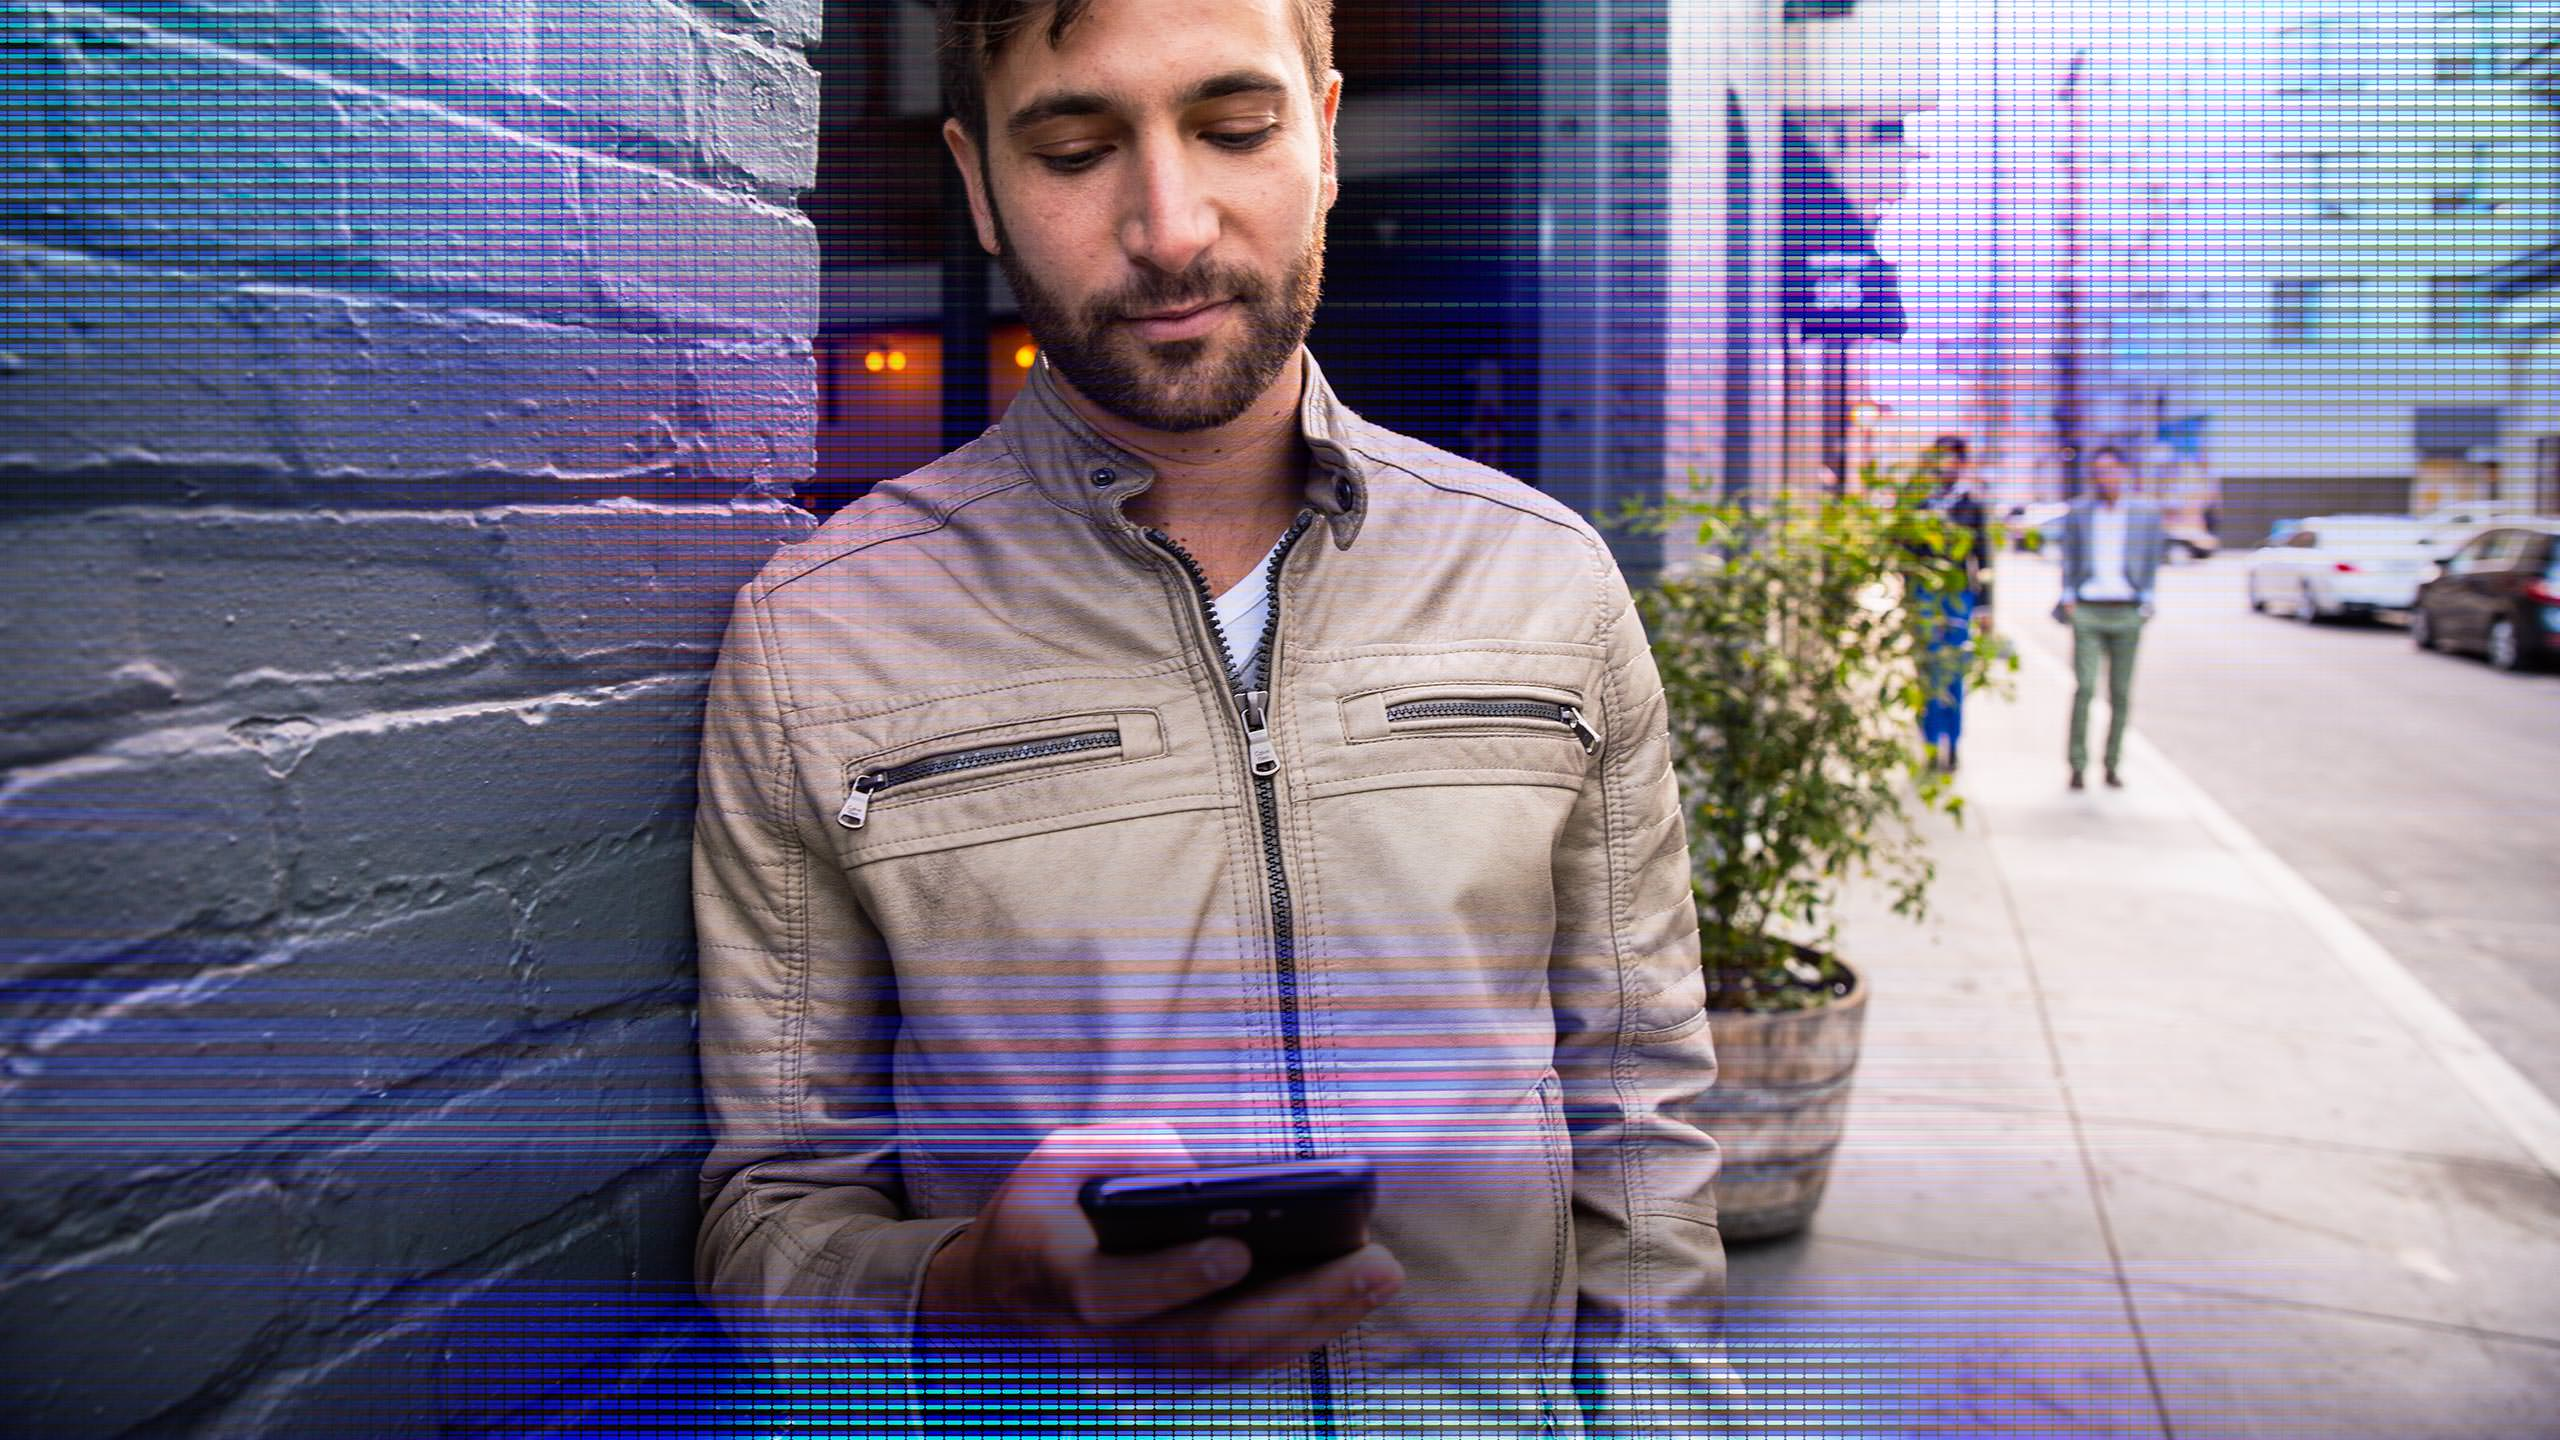 Citrix Brand Photography - Man with mobile phone on street